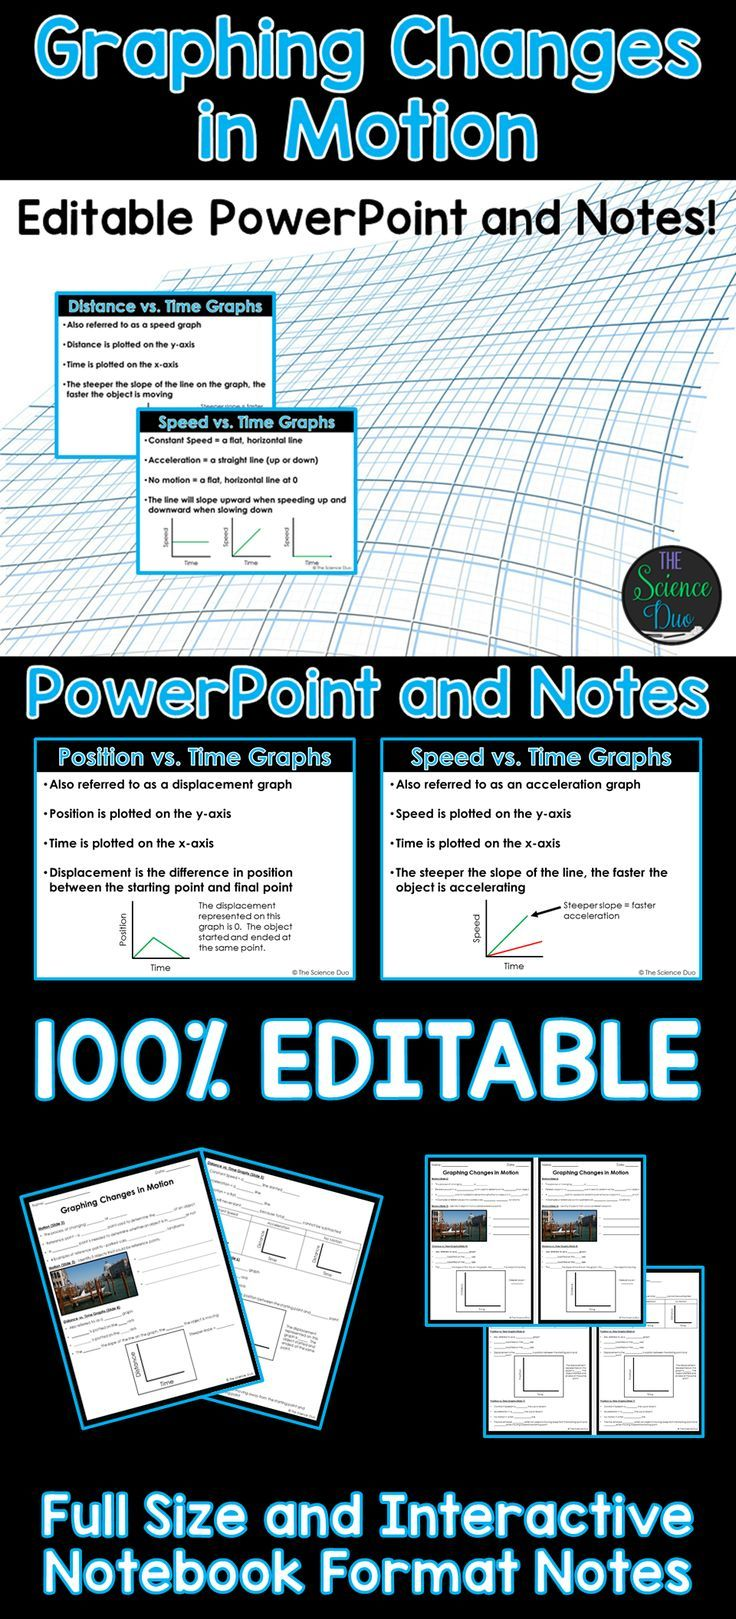 Introduce motion and graphing changes in motion with this PowerPoint presentation. This covers 3 different types of graphs with examples of constant speed, acceleration, and no motion for each type of graph. This resource includes a 15 slide PowerPoint presentation and 2 versions of the student notes pages.